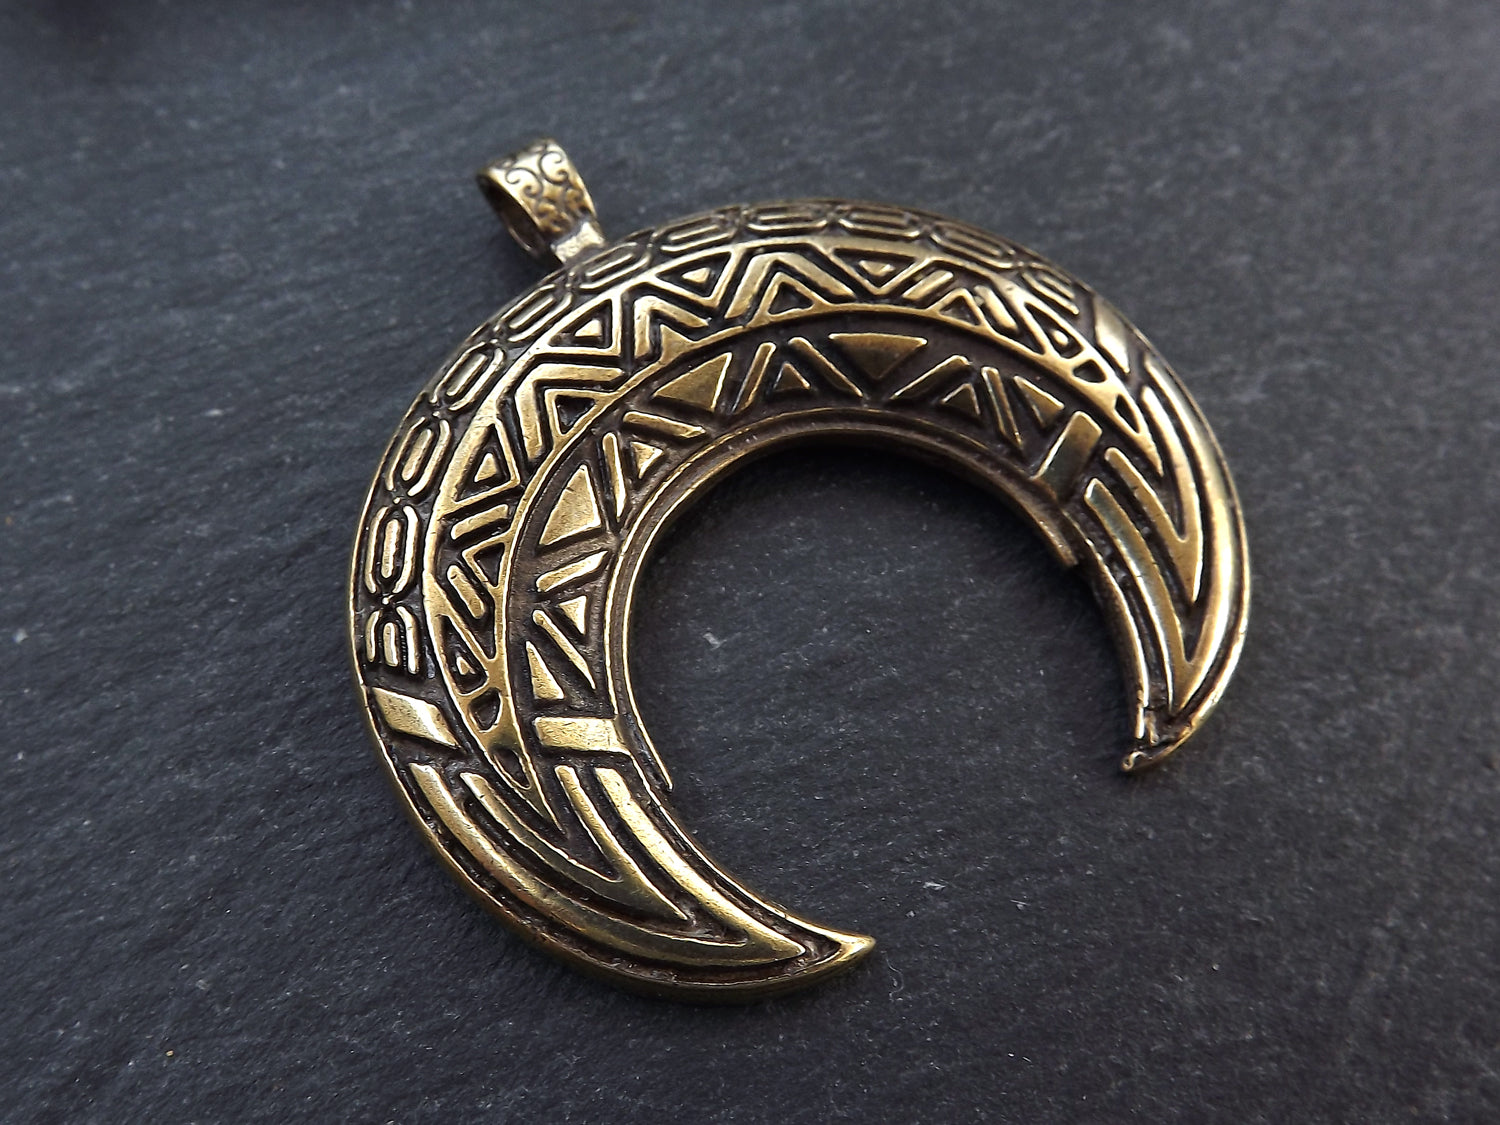 Large Crescent Pendant Tribal Double Horn Moon Detailed Pendant Antique  Bronze Plated Turkish Jewelry Supplies Findings Components 1PC